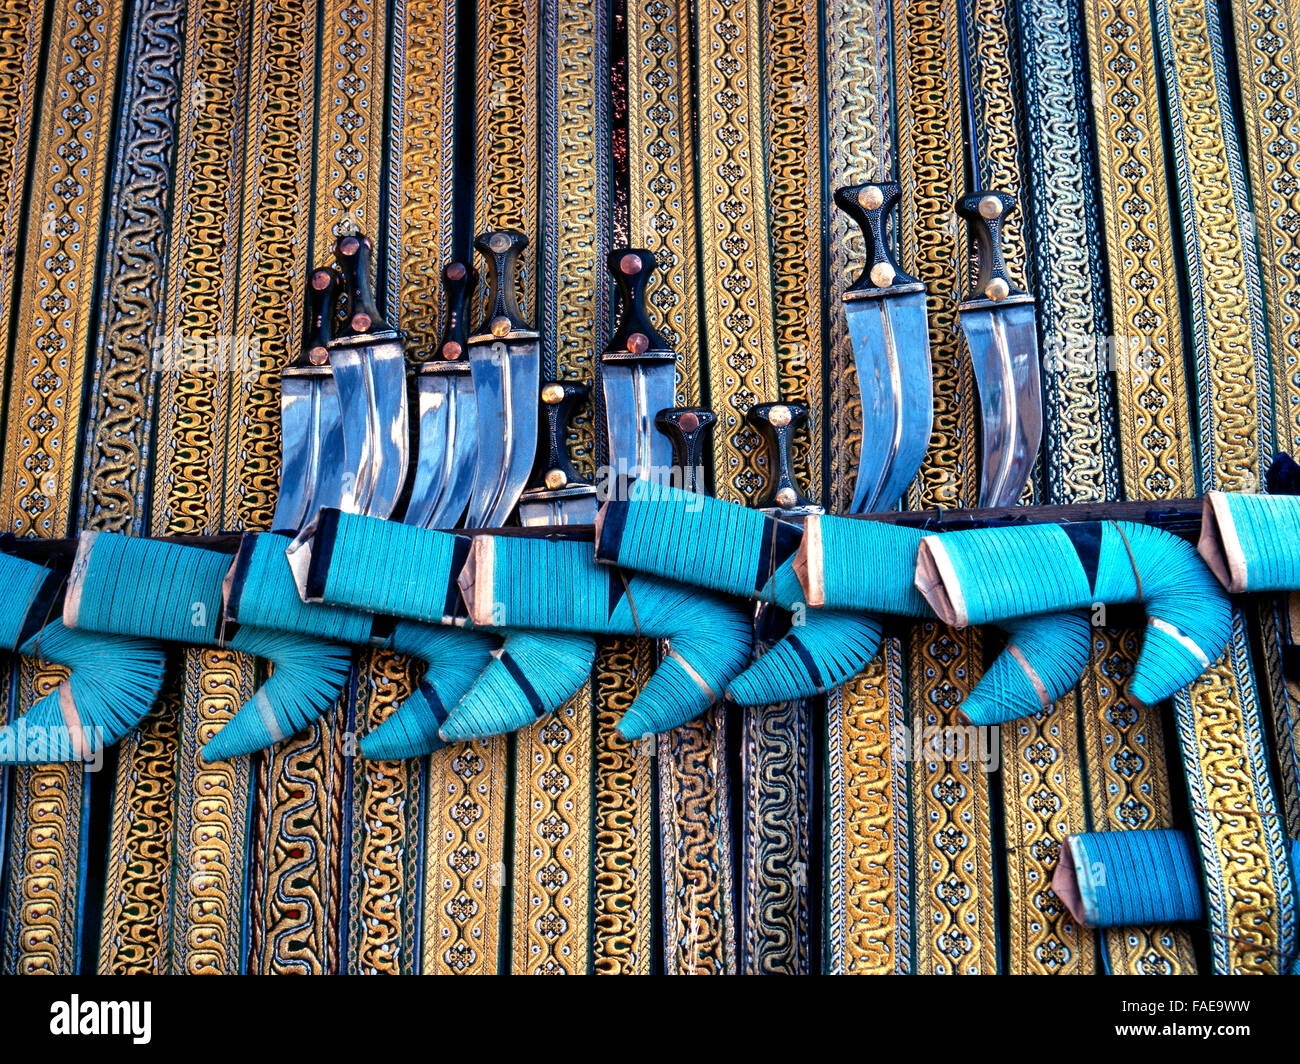 Jambia, a traditional Yemeni dagger is used both for self defense and in traditional dance. image taken in a shop - Stock Image